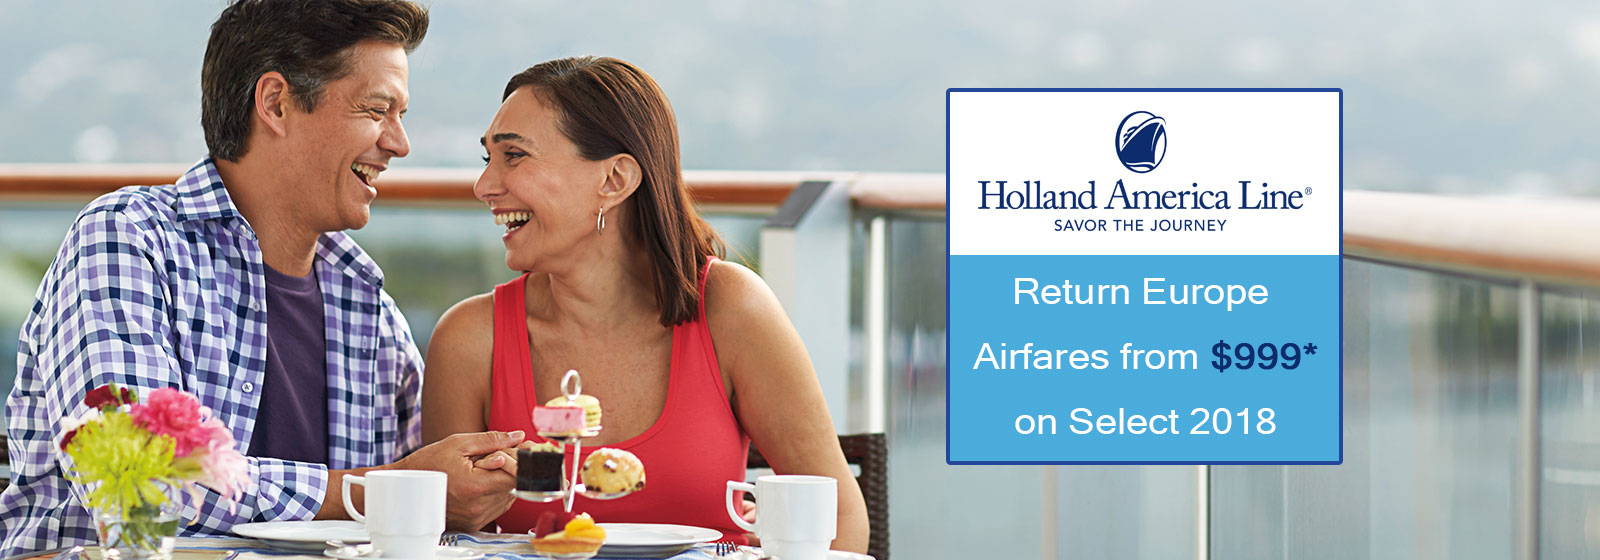 Holland America Europe Air Offer